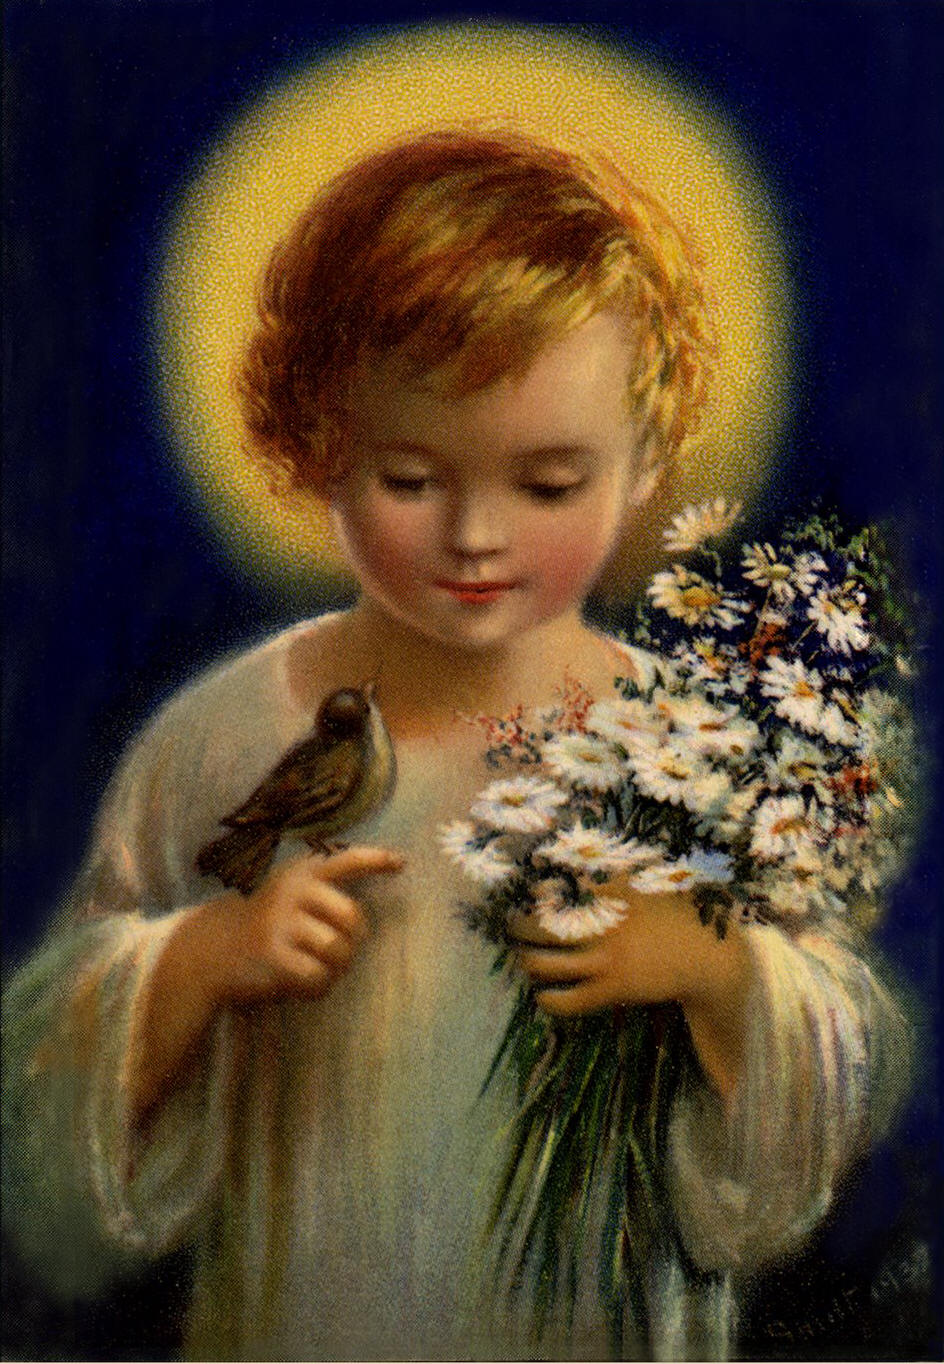 to the child jesus The cult of the child jesus thrived at the carmel of lisieux, france, and there were many images of the christ child that thérèse would have seen daily.